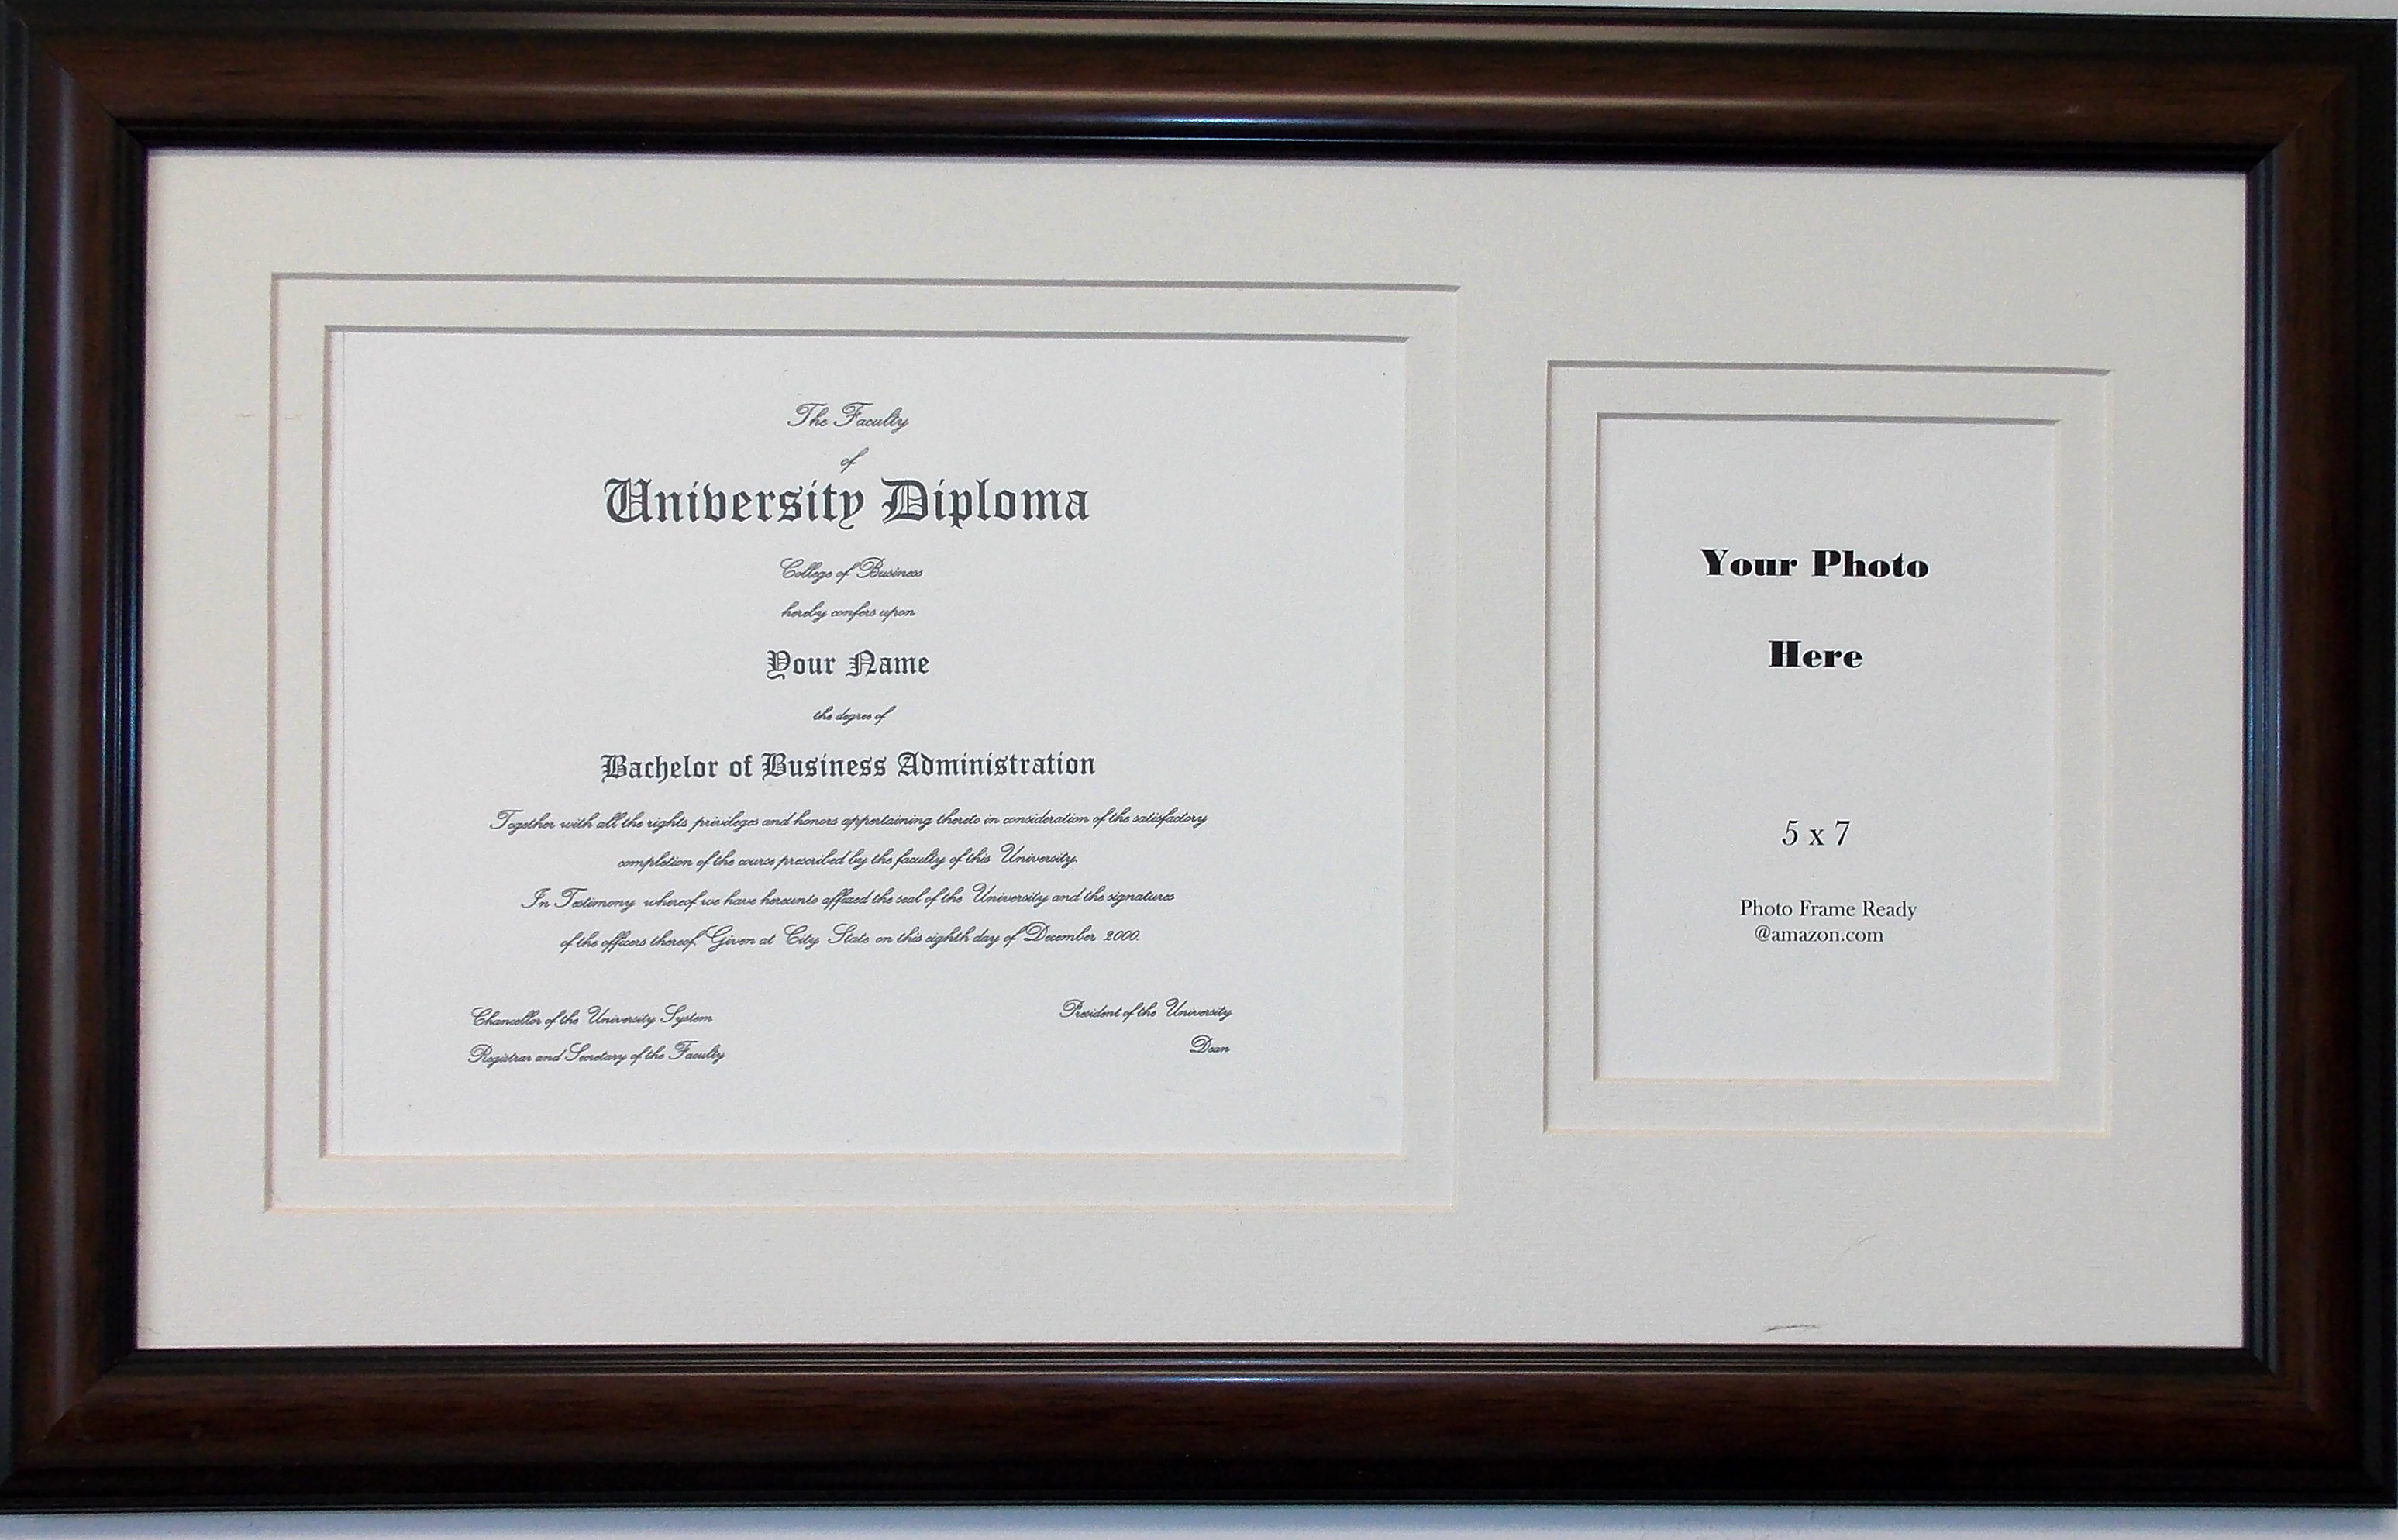 Graduation University Diploma Certificate Photo Frame Matted Holds 8-1/2 X  11 Certificate with 5 X 7 Photo Double White Mats